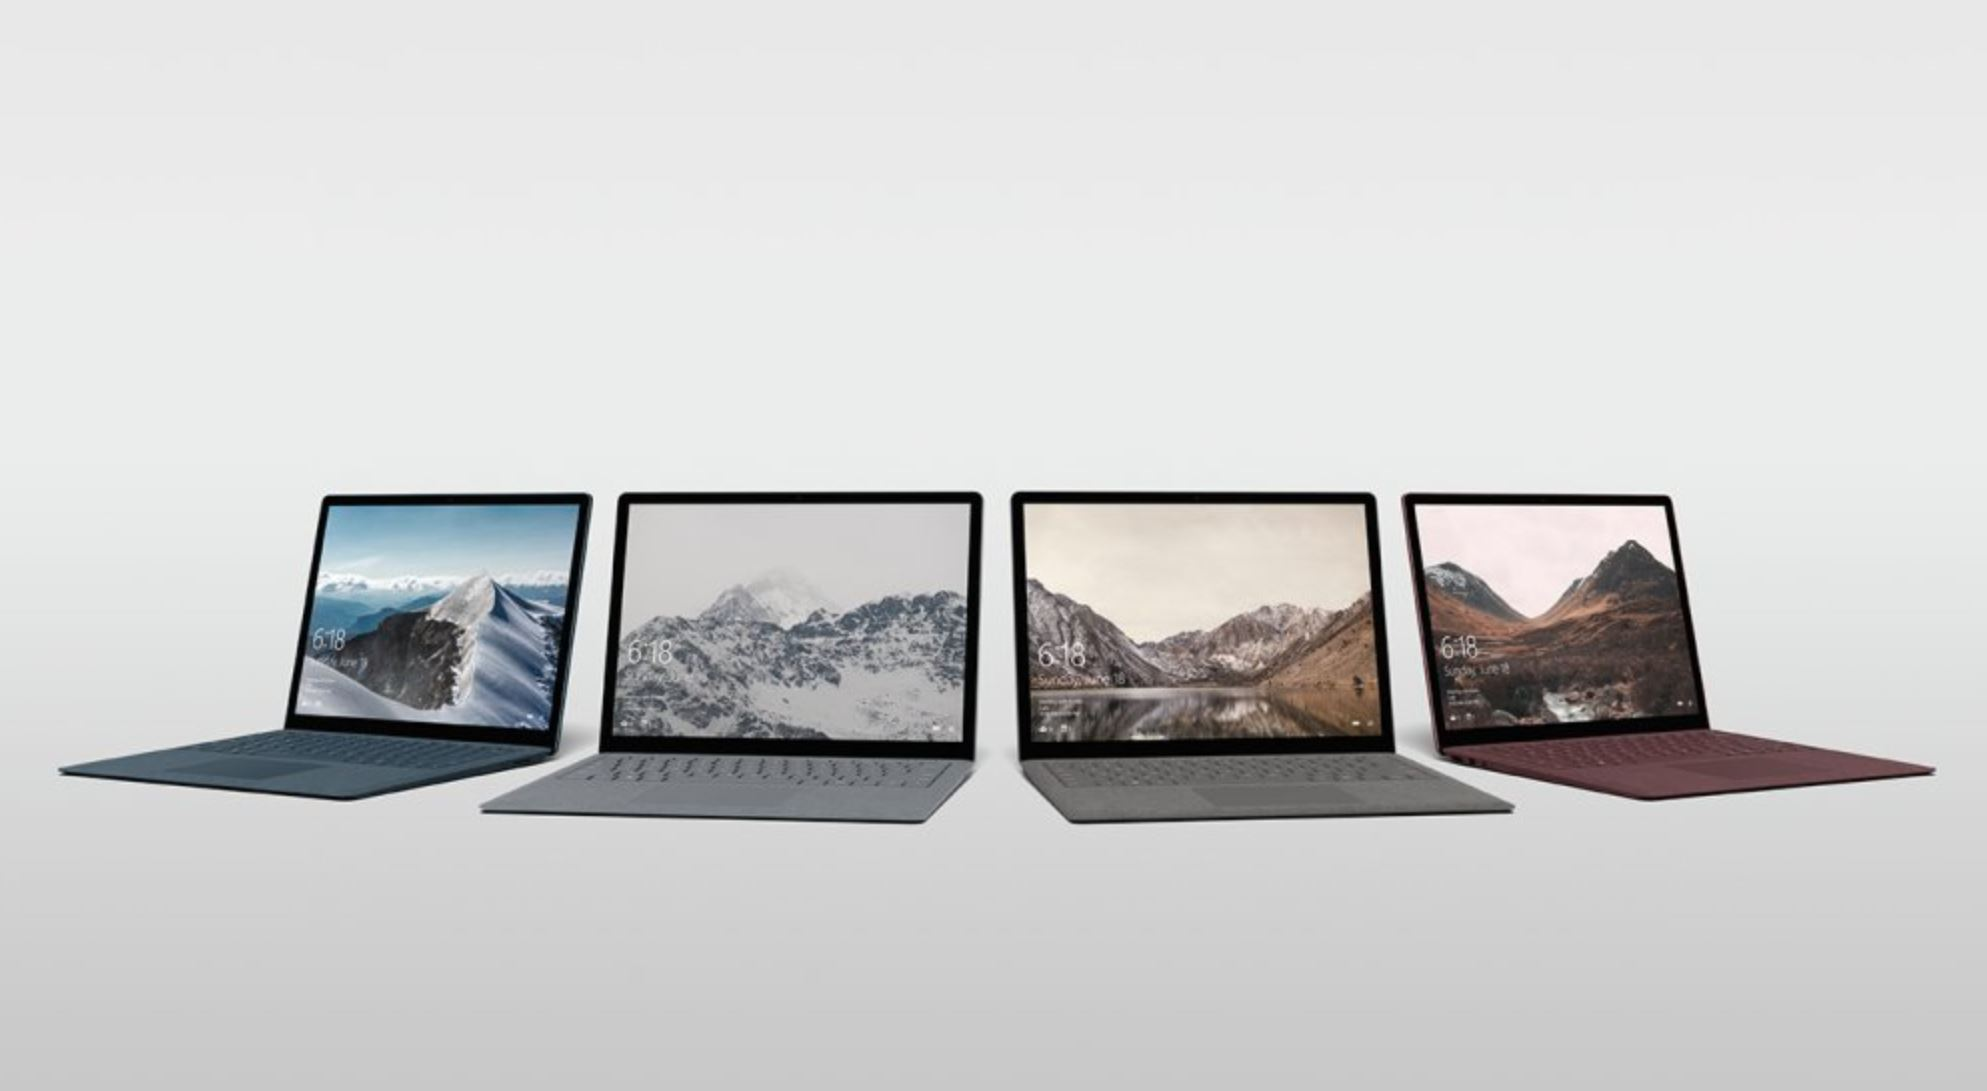 Surface Laptop is Microsoft's Windows 10 S